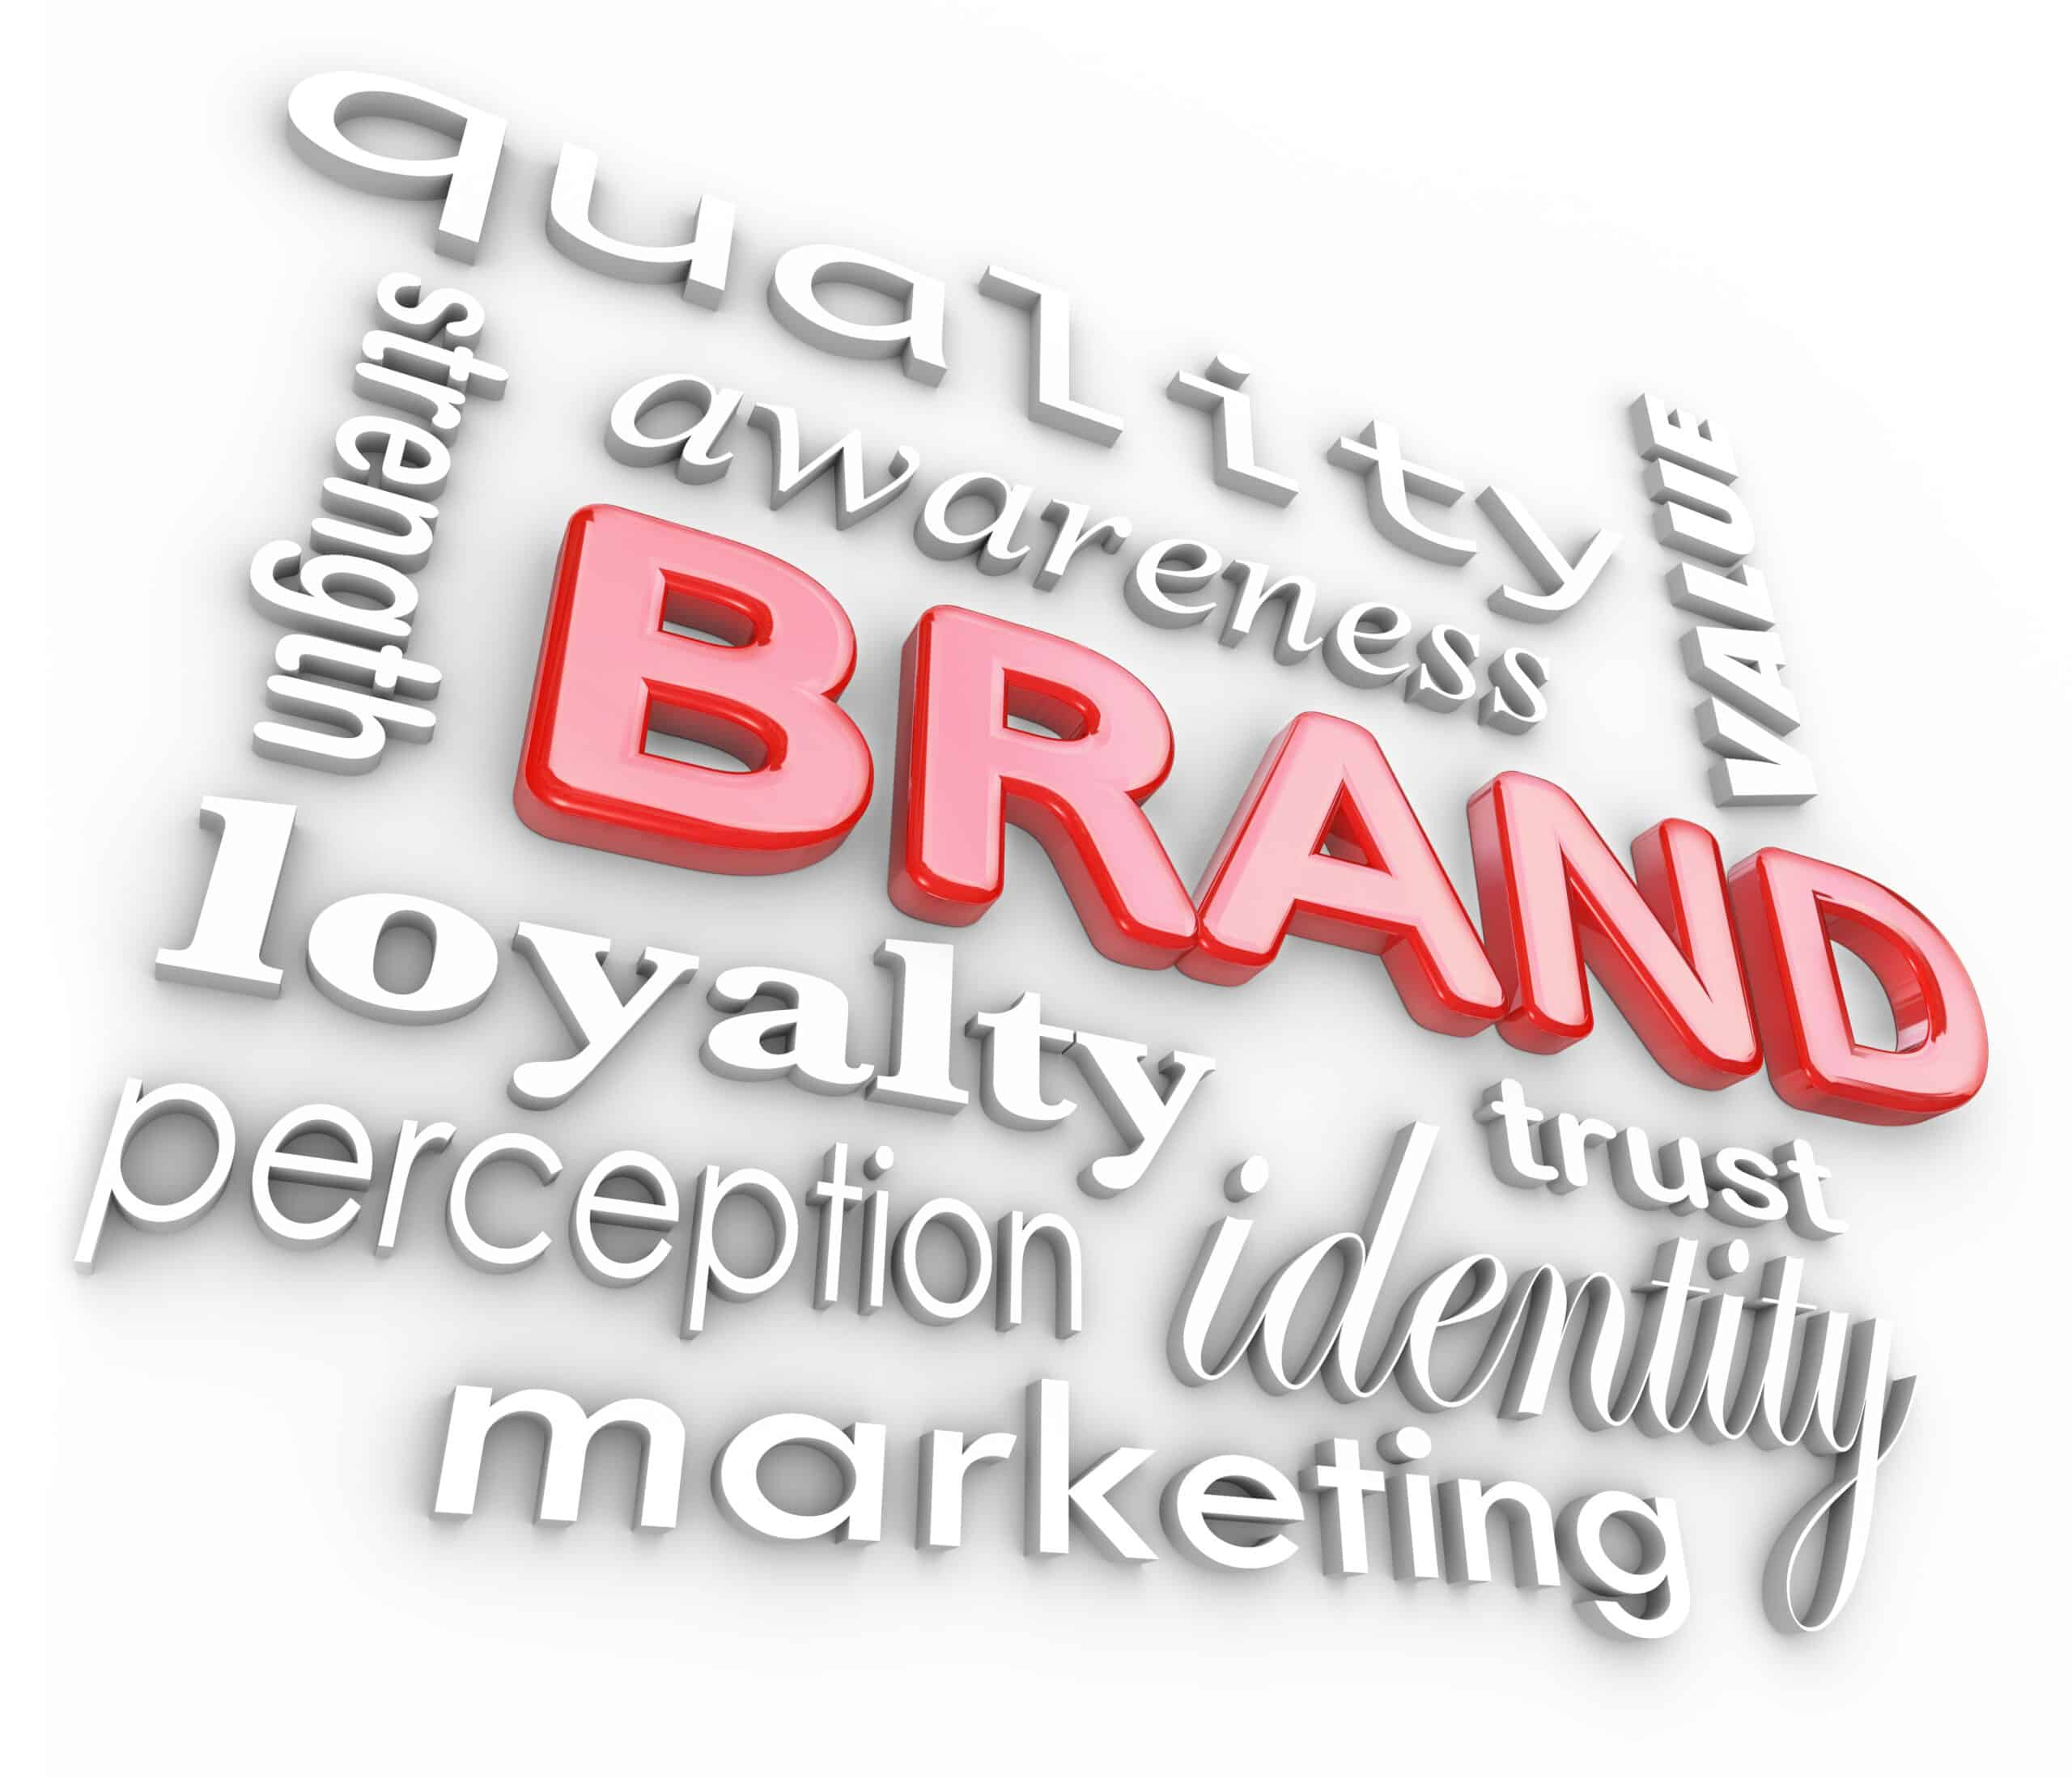 Image of positive brand words to illustrate blog post, Mullarky Business Systems Re-Branding as Great Lakes Tech Services